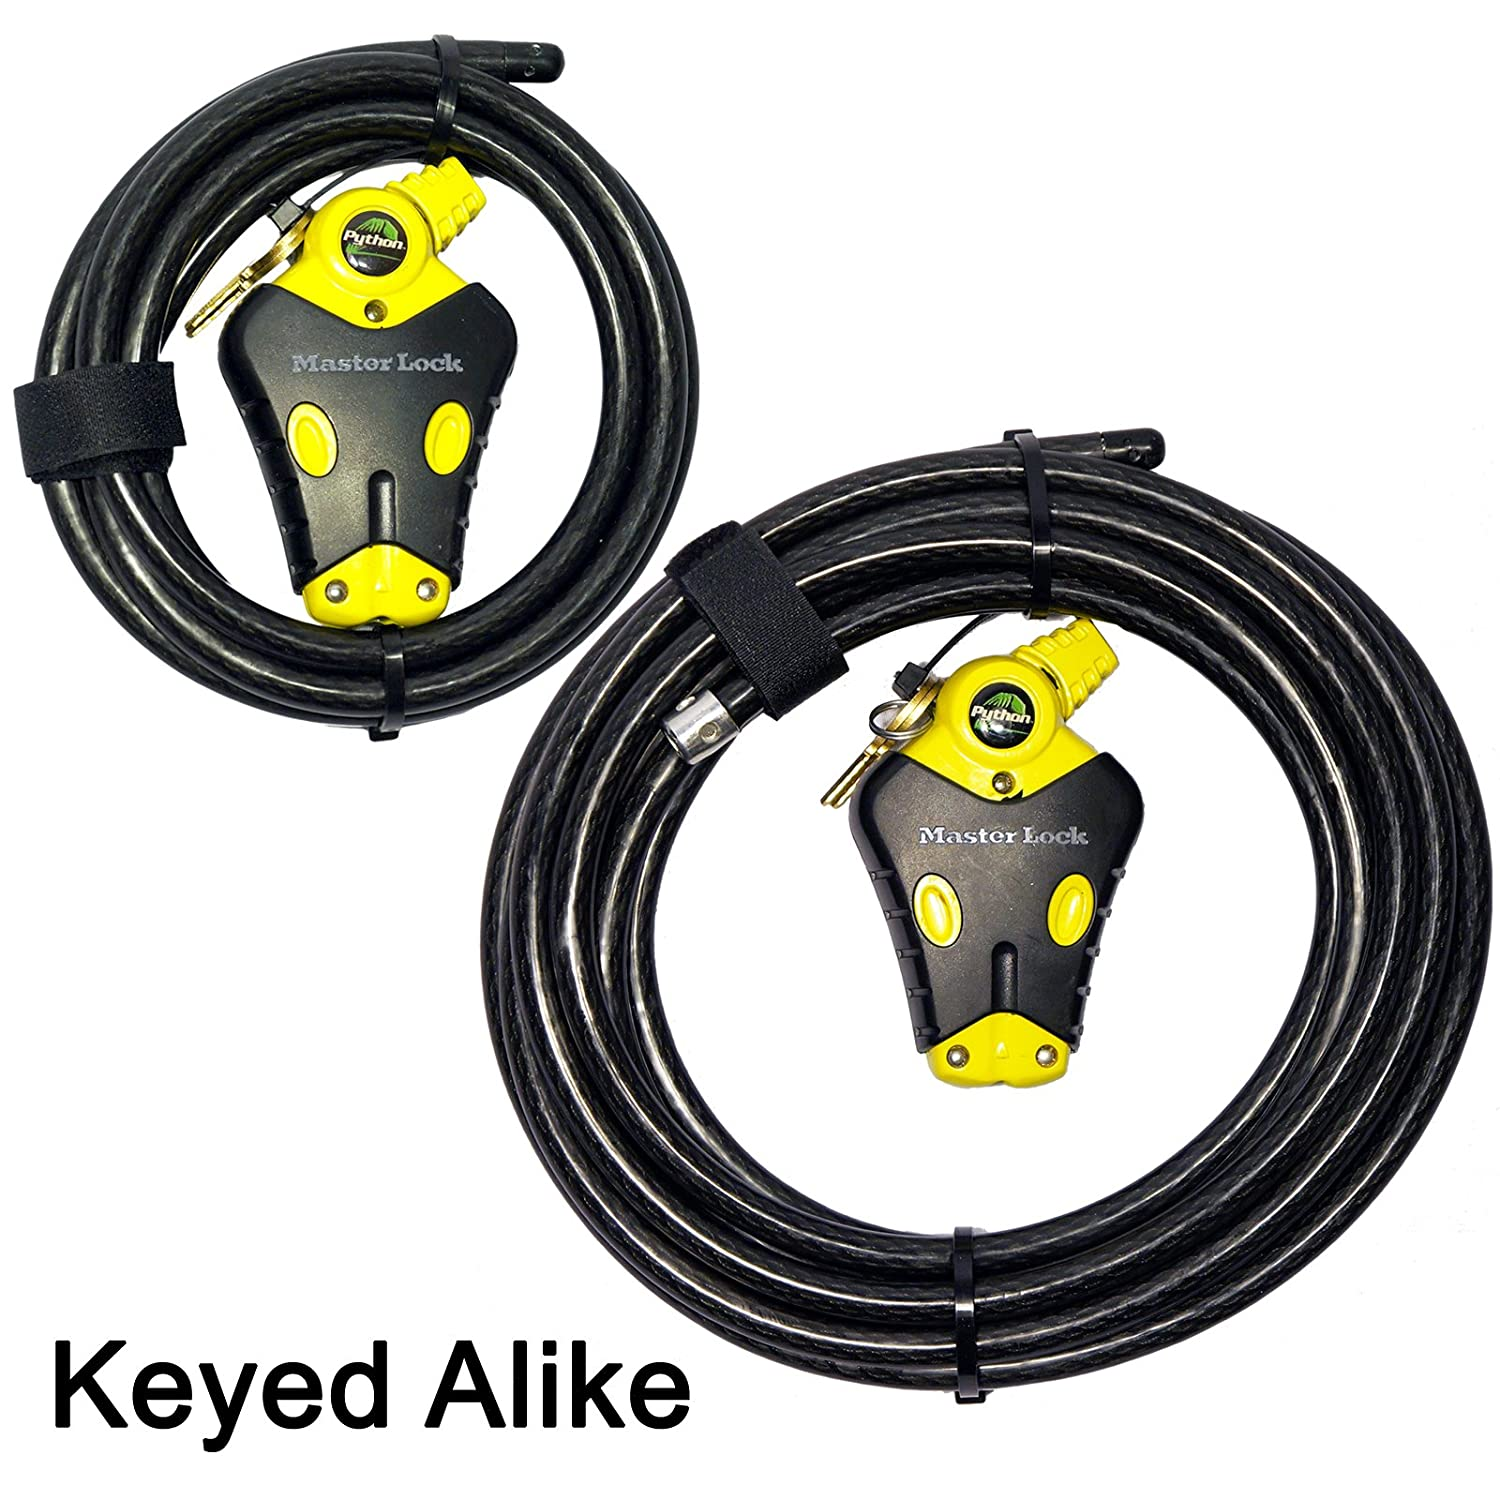 Master Lock 8417D Python Adjustable Locking Cable 6-Foot